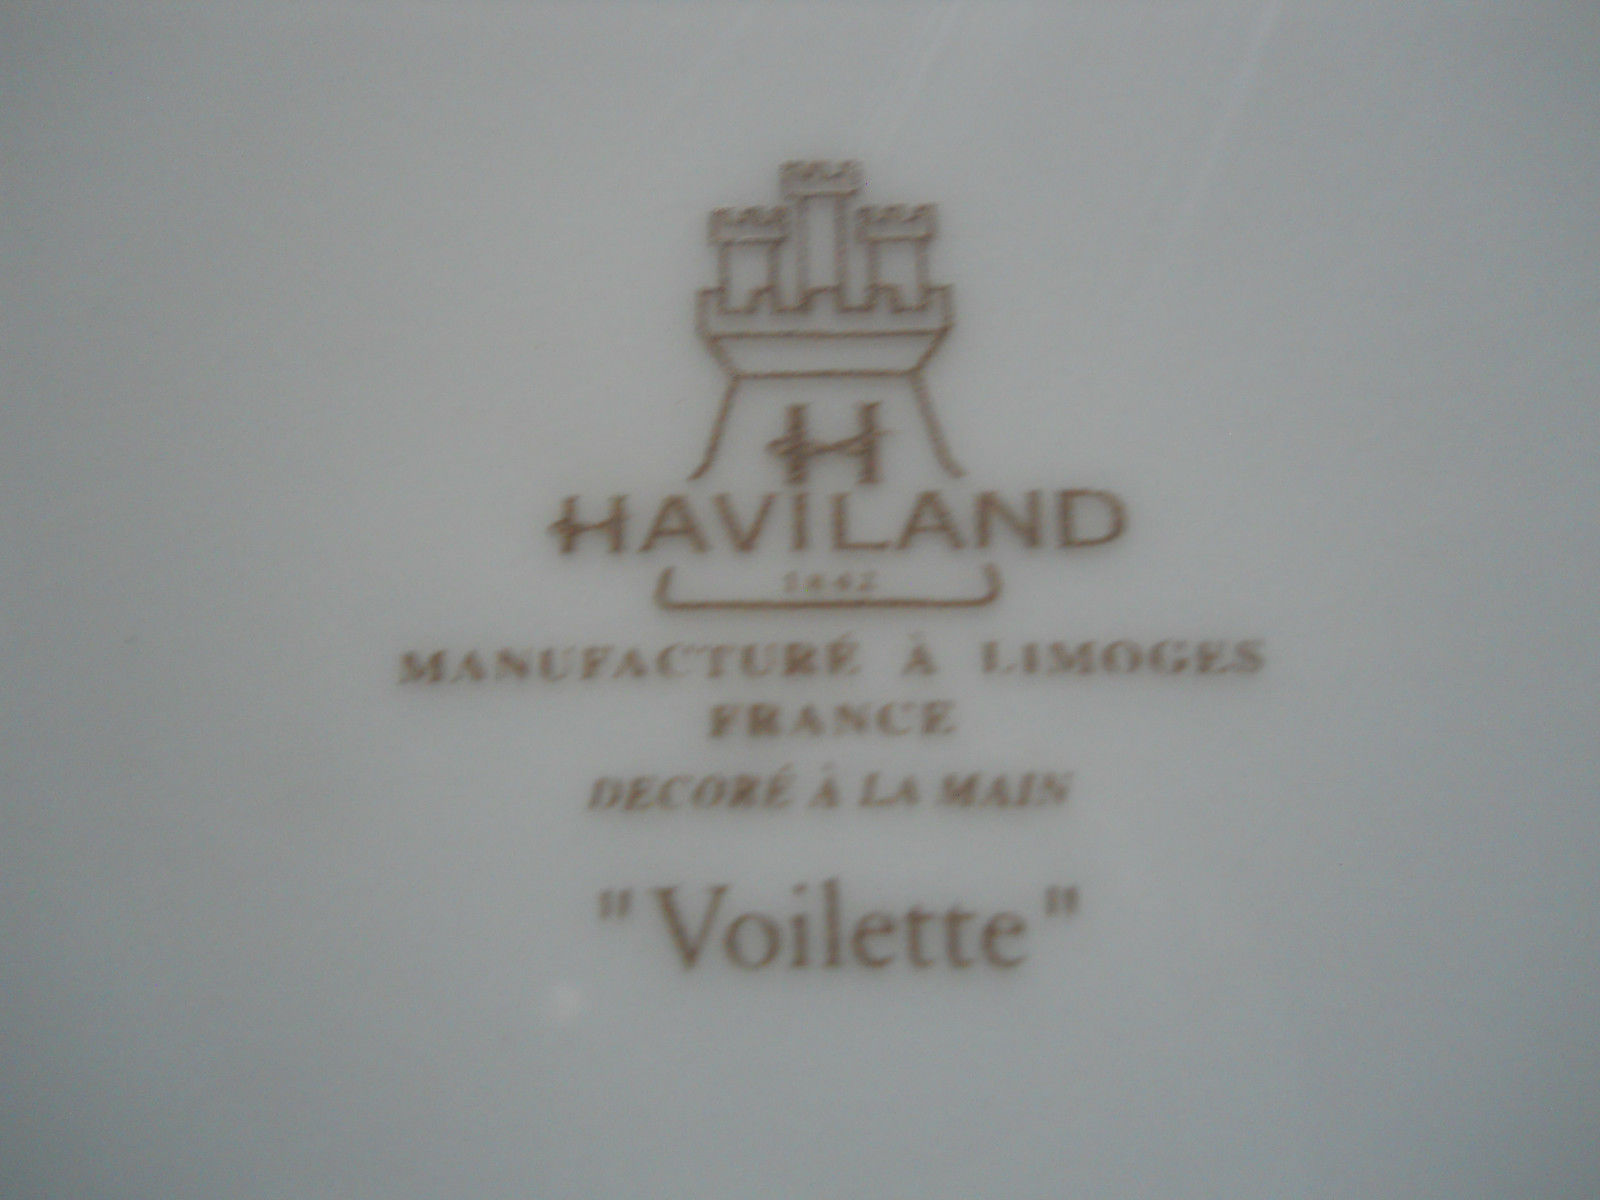 Primary image for Haviland Voilette grey 5 piece place setting